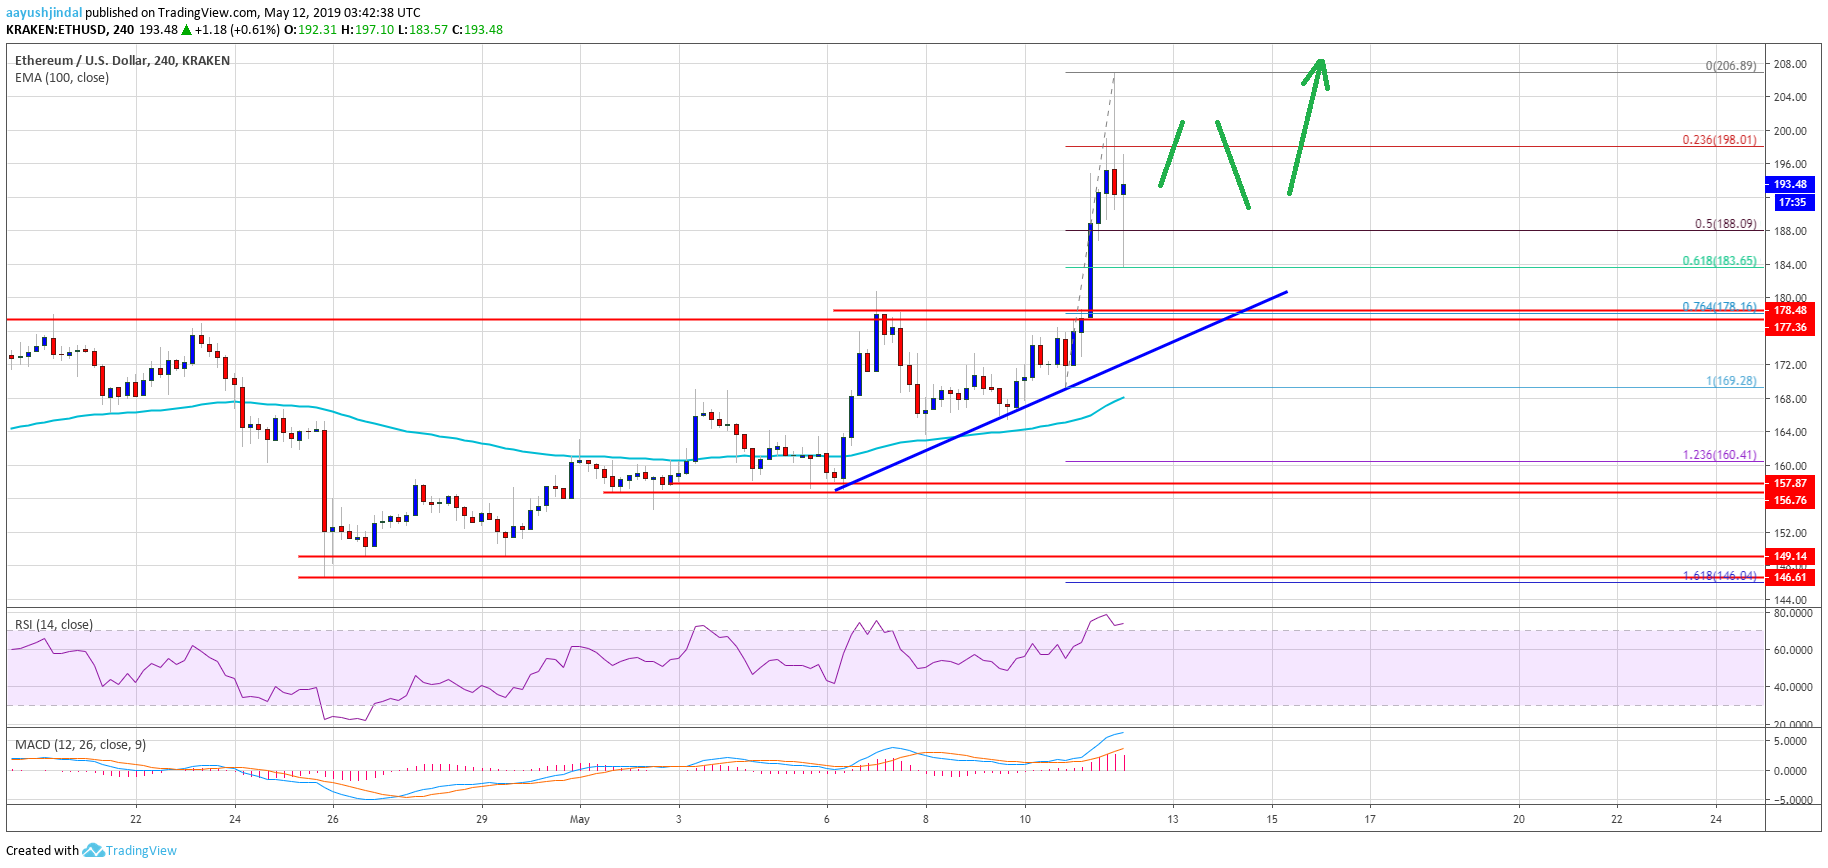 Ethereum (ETH) Price Smashes Resistance: Bulls Target $220 or Higher